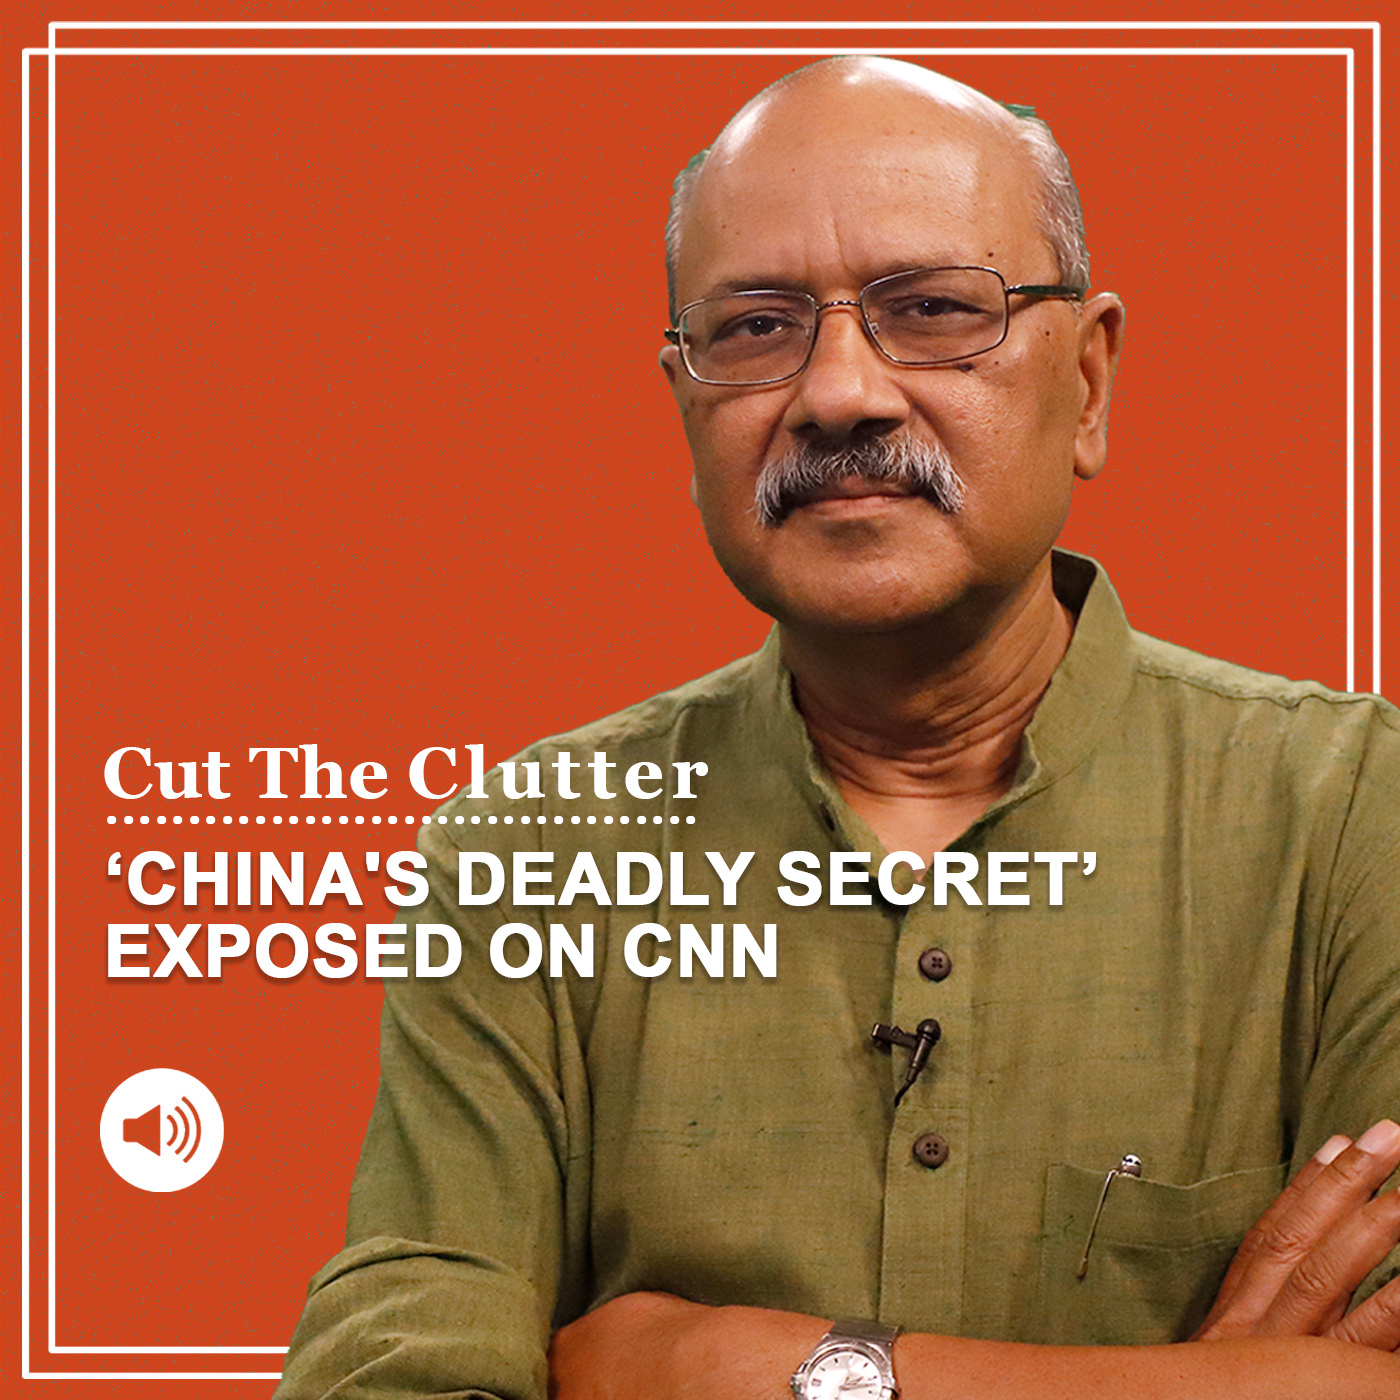 Cut The Clutter: 6 highlights in CNN investigation on how China hid Covid. And the chap who slept with his hockey stick